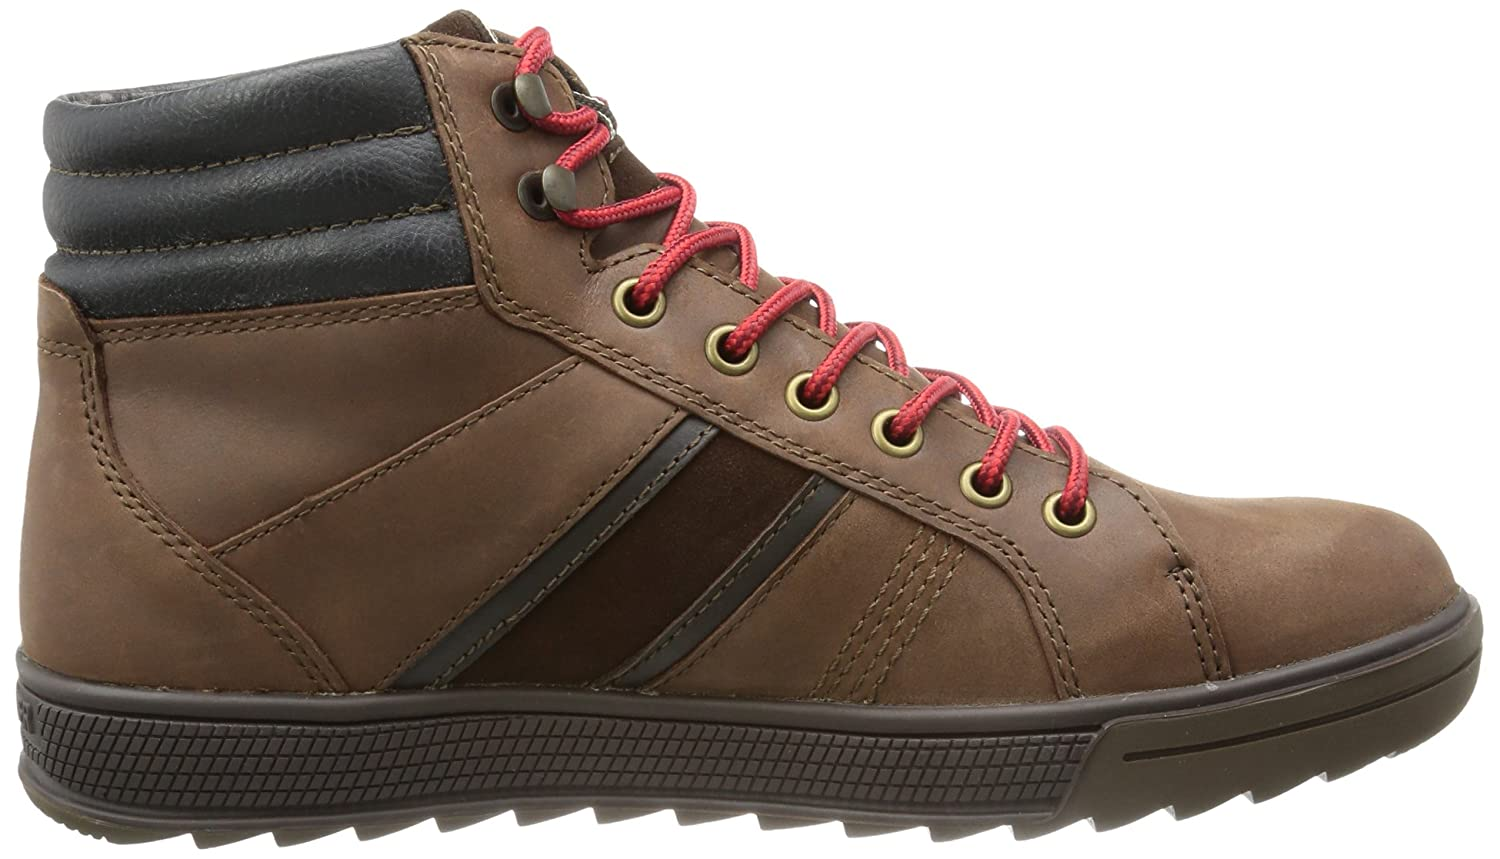 TIBO CRAZY HORSE 58 BROWN P2003102, Herren Sneaker, Braun (BROWN CRAZY HORSE 58), EU 41.5 (UK 7.5) Mephisto